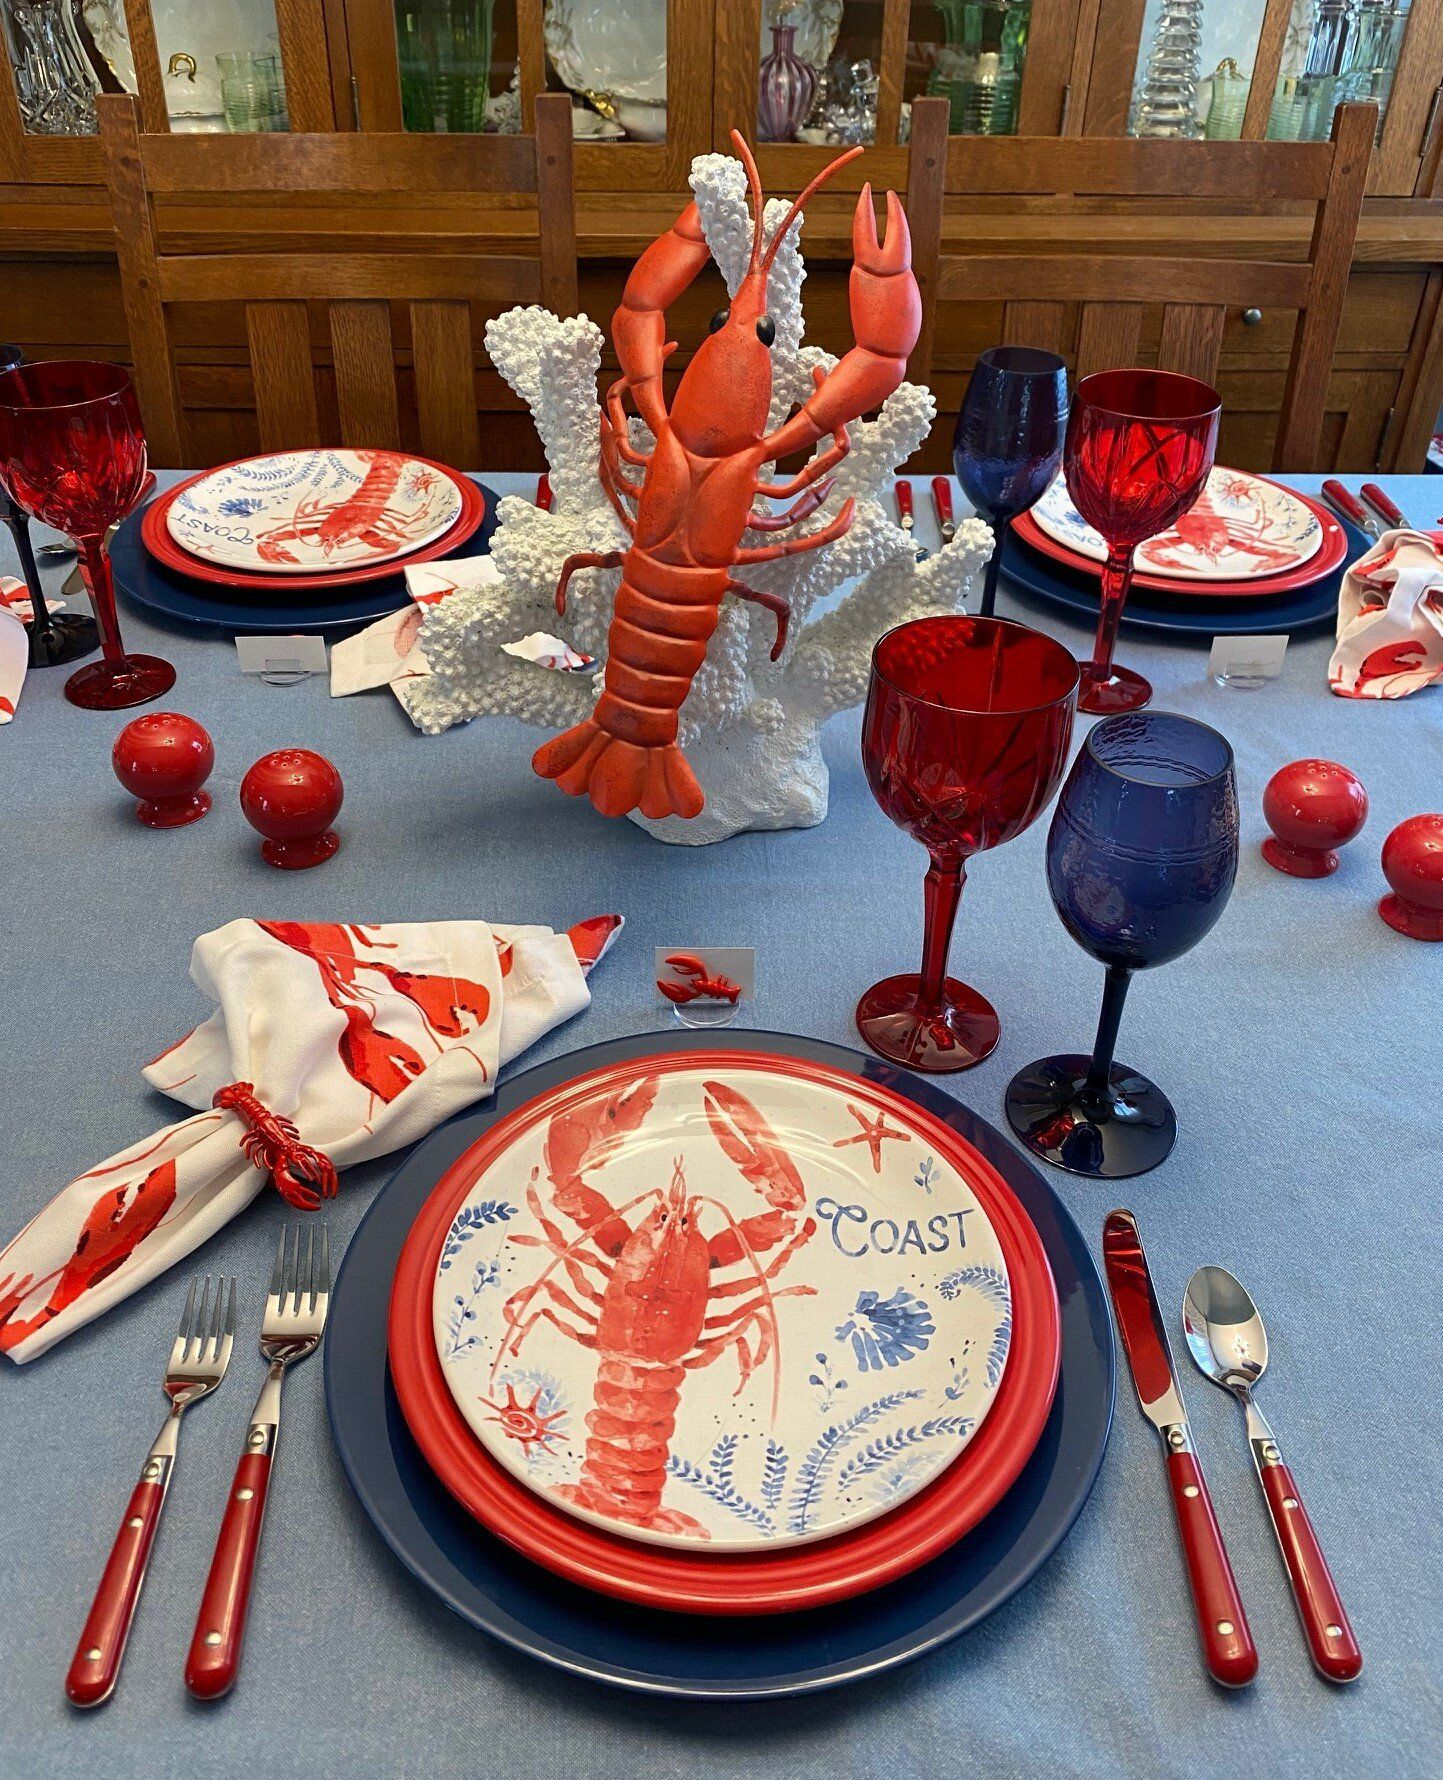 Whispers of the Heart in 2020 | Fiesta plates, Tablescapes ...